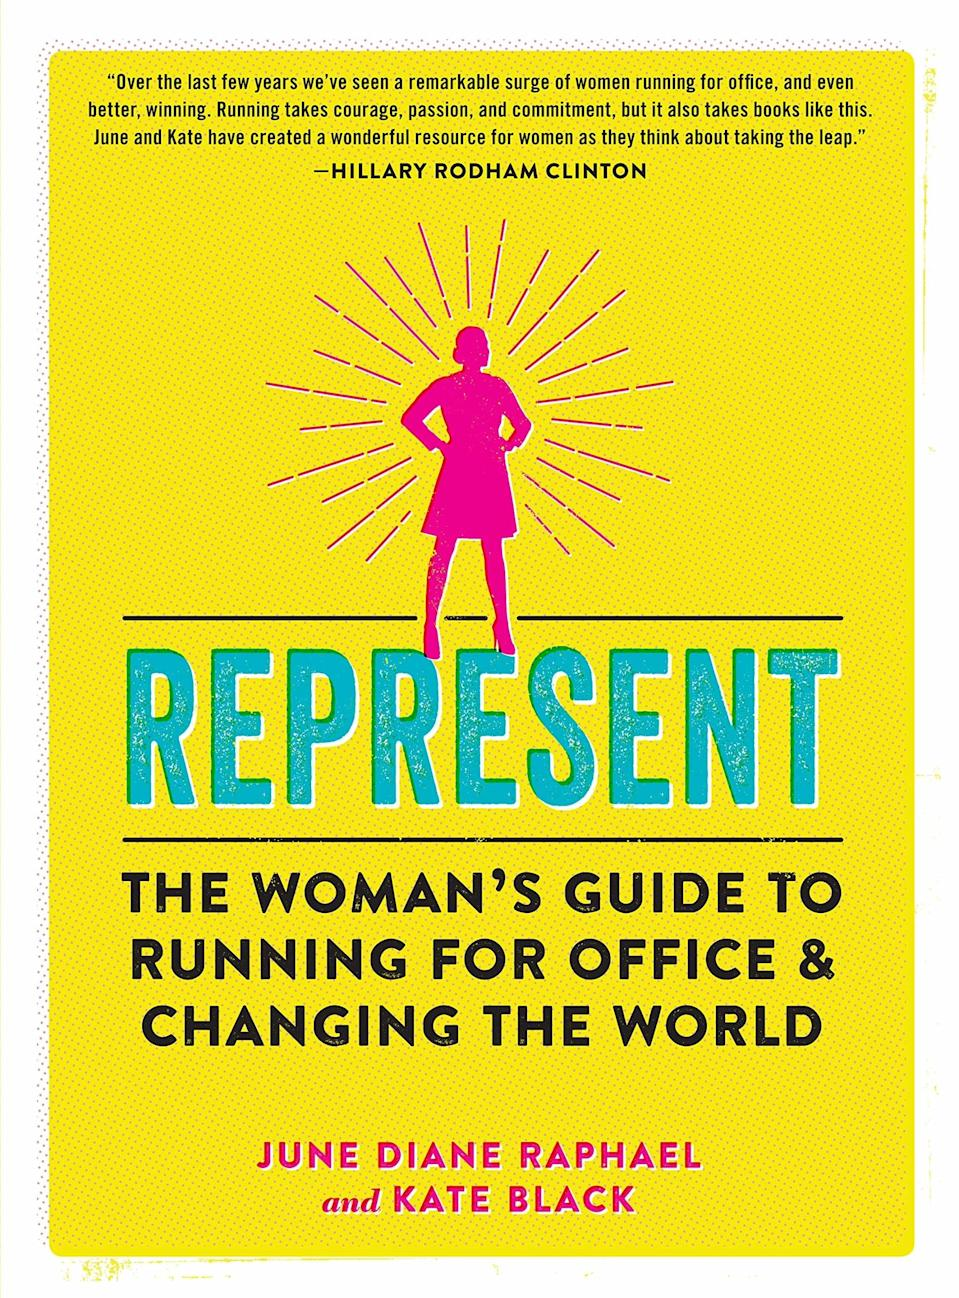 <em>Grace and Frankie</em> actor and activist June Diane Raphael and former chief of staff at Emily's List Kate Black have teamed up to write the definitive guide for women looking to run for office. From how to dress to what to do with your naked pictures and the best ways to fund-raise, it's a hilarious and inspiring road map for the next generation of female leaders.